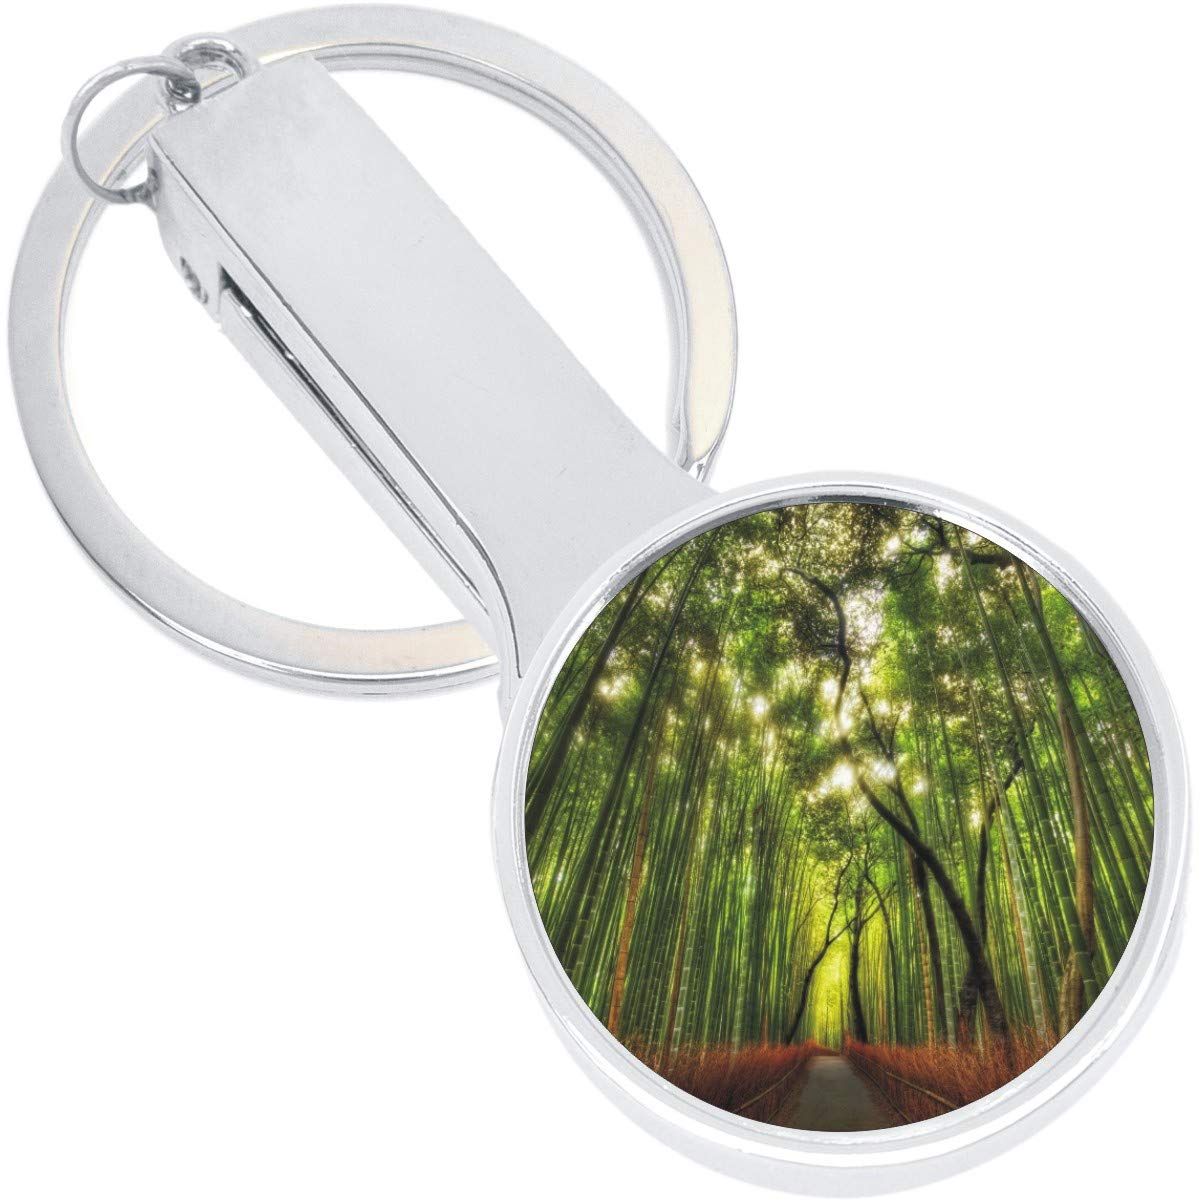 Bamboo Forest Japan Purse Hanger with Keychain